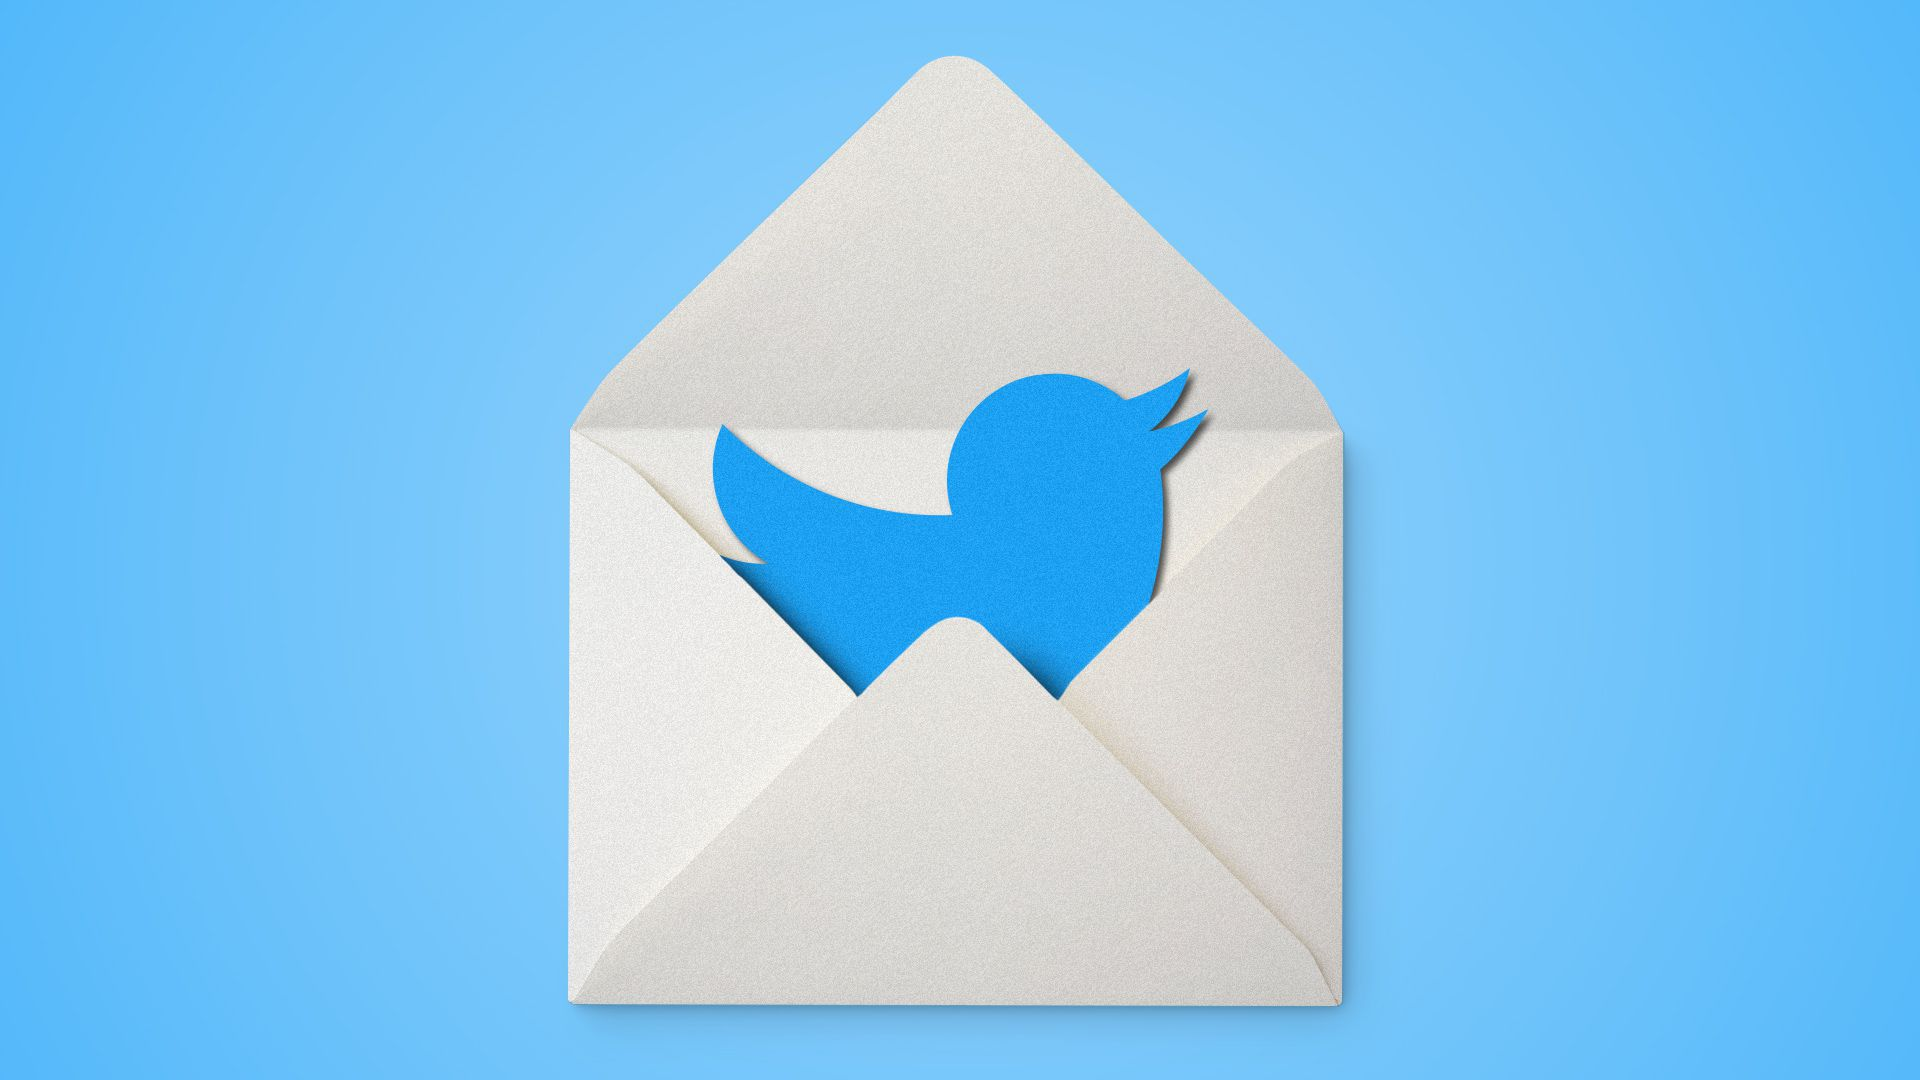 Twitter acquiring newsletter publishing company Revue - Axios